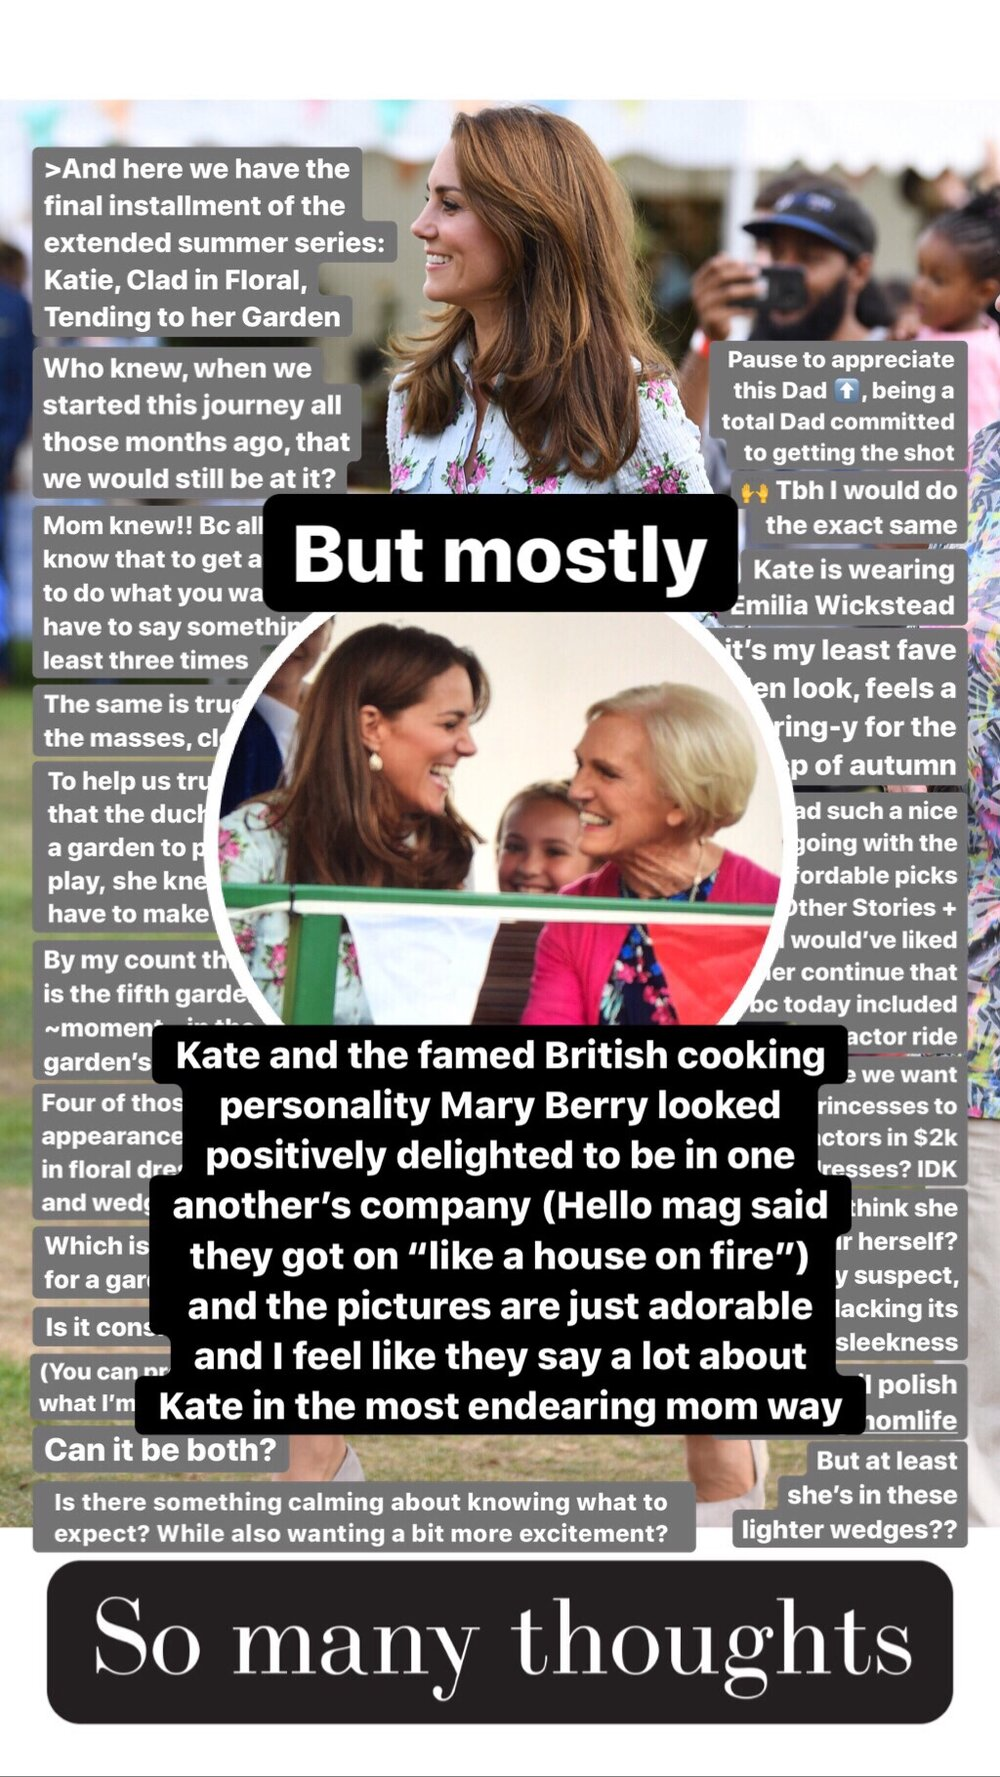 Kate_MaryBerry3.JPG